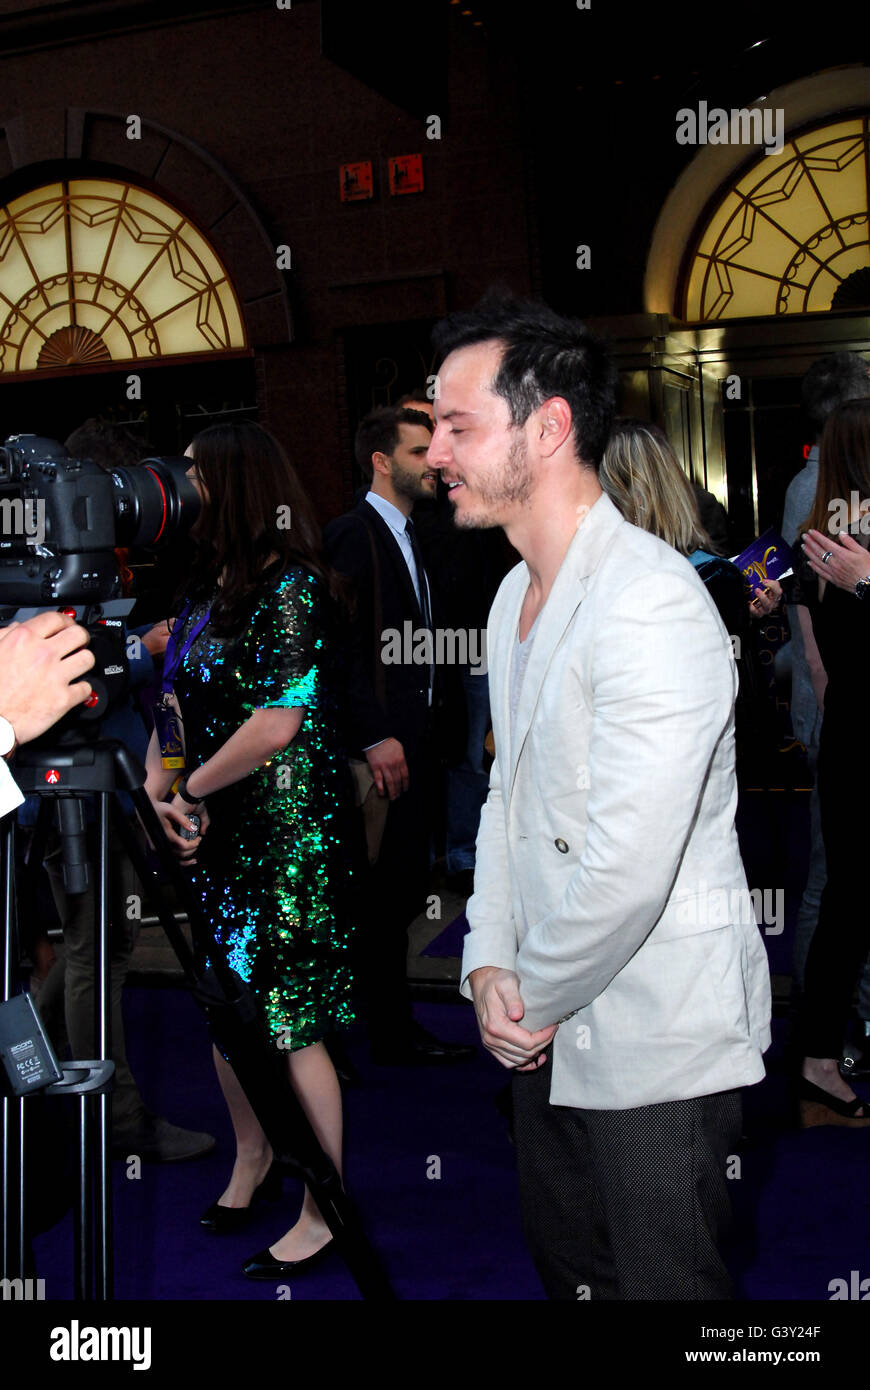 London, UK. 15th June, 2016. Andrew Scott and Aj Odudu attends the premiere of Aladdin at the Prince Edward theatre - Stock Image